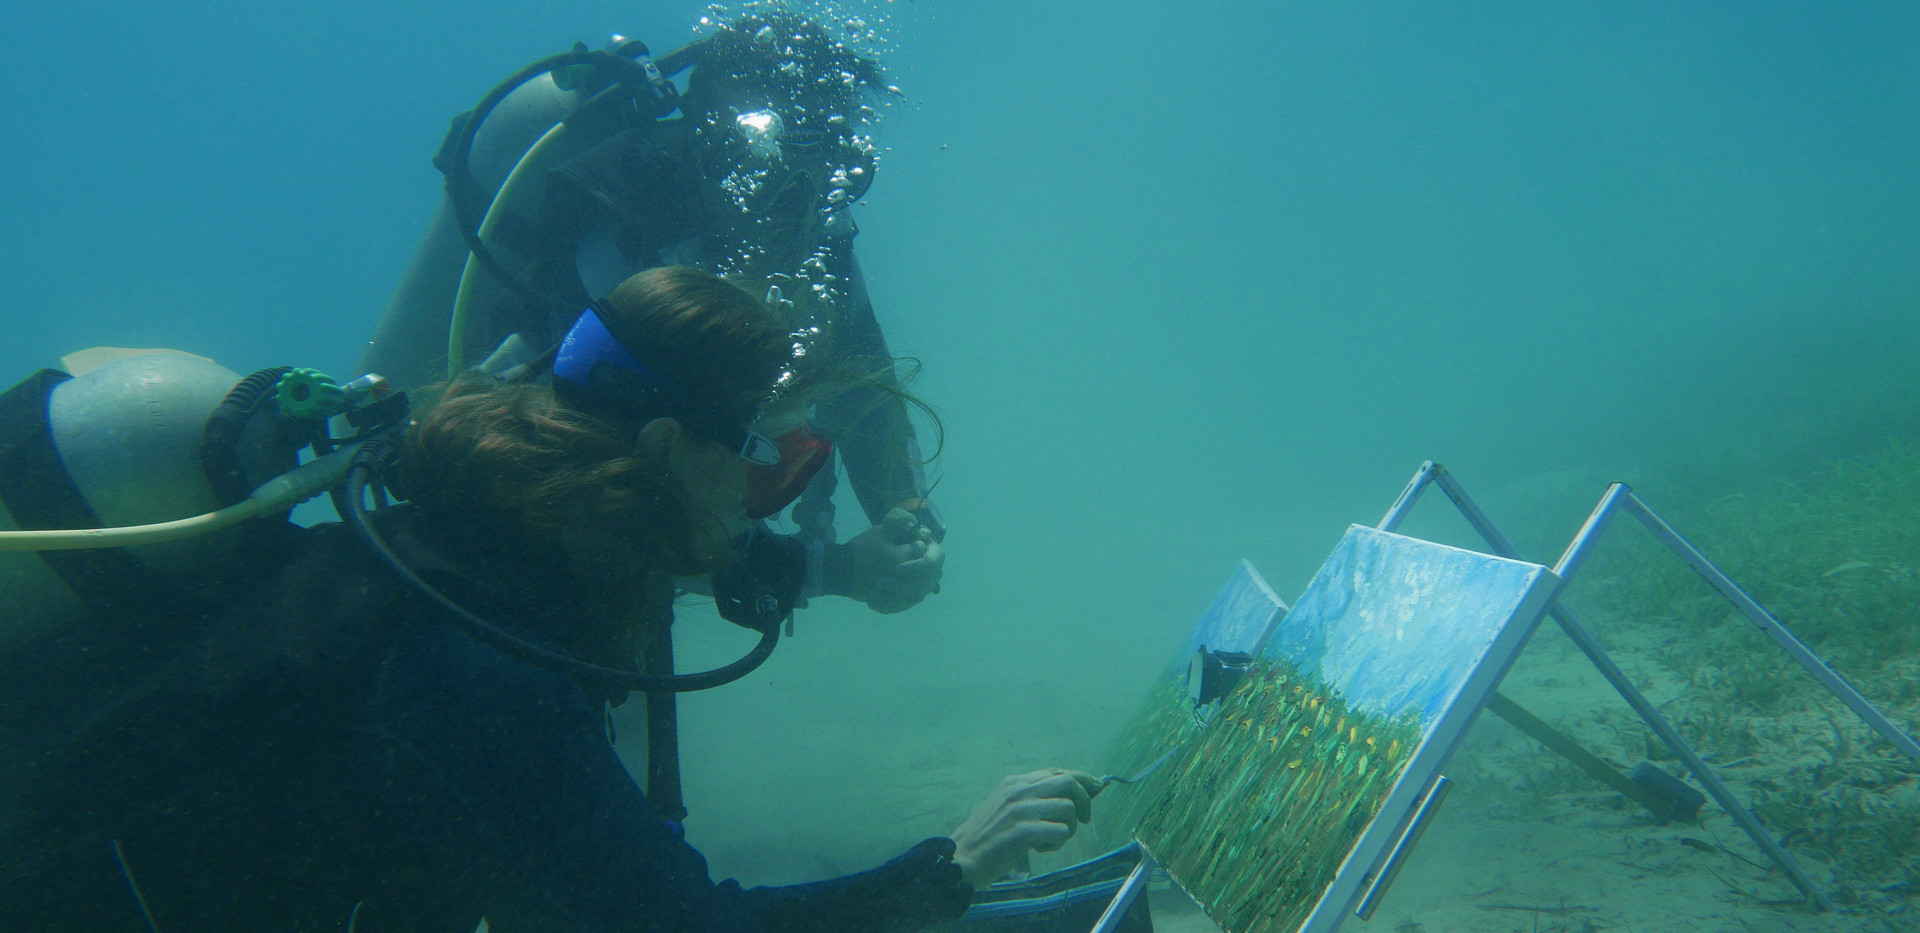 The process of underwater painting